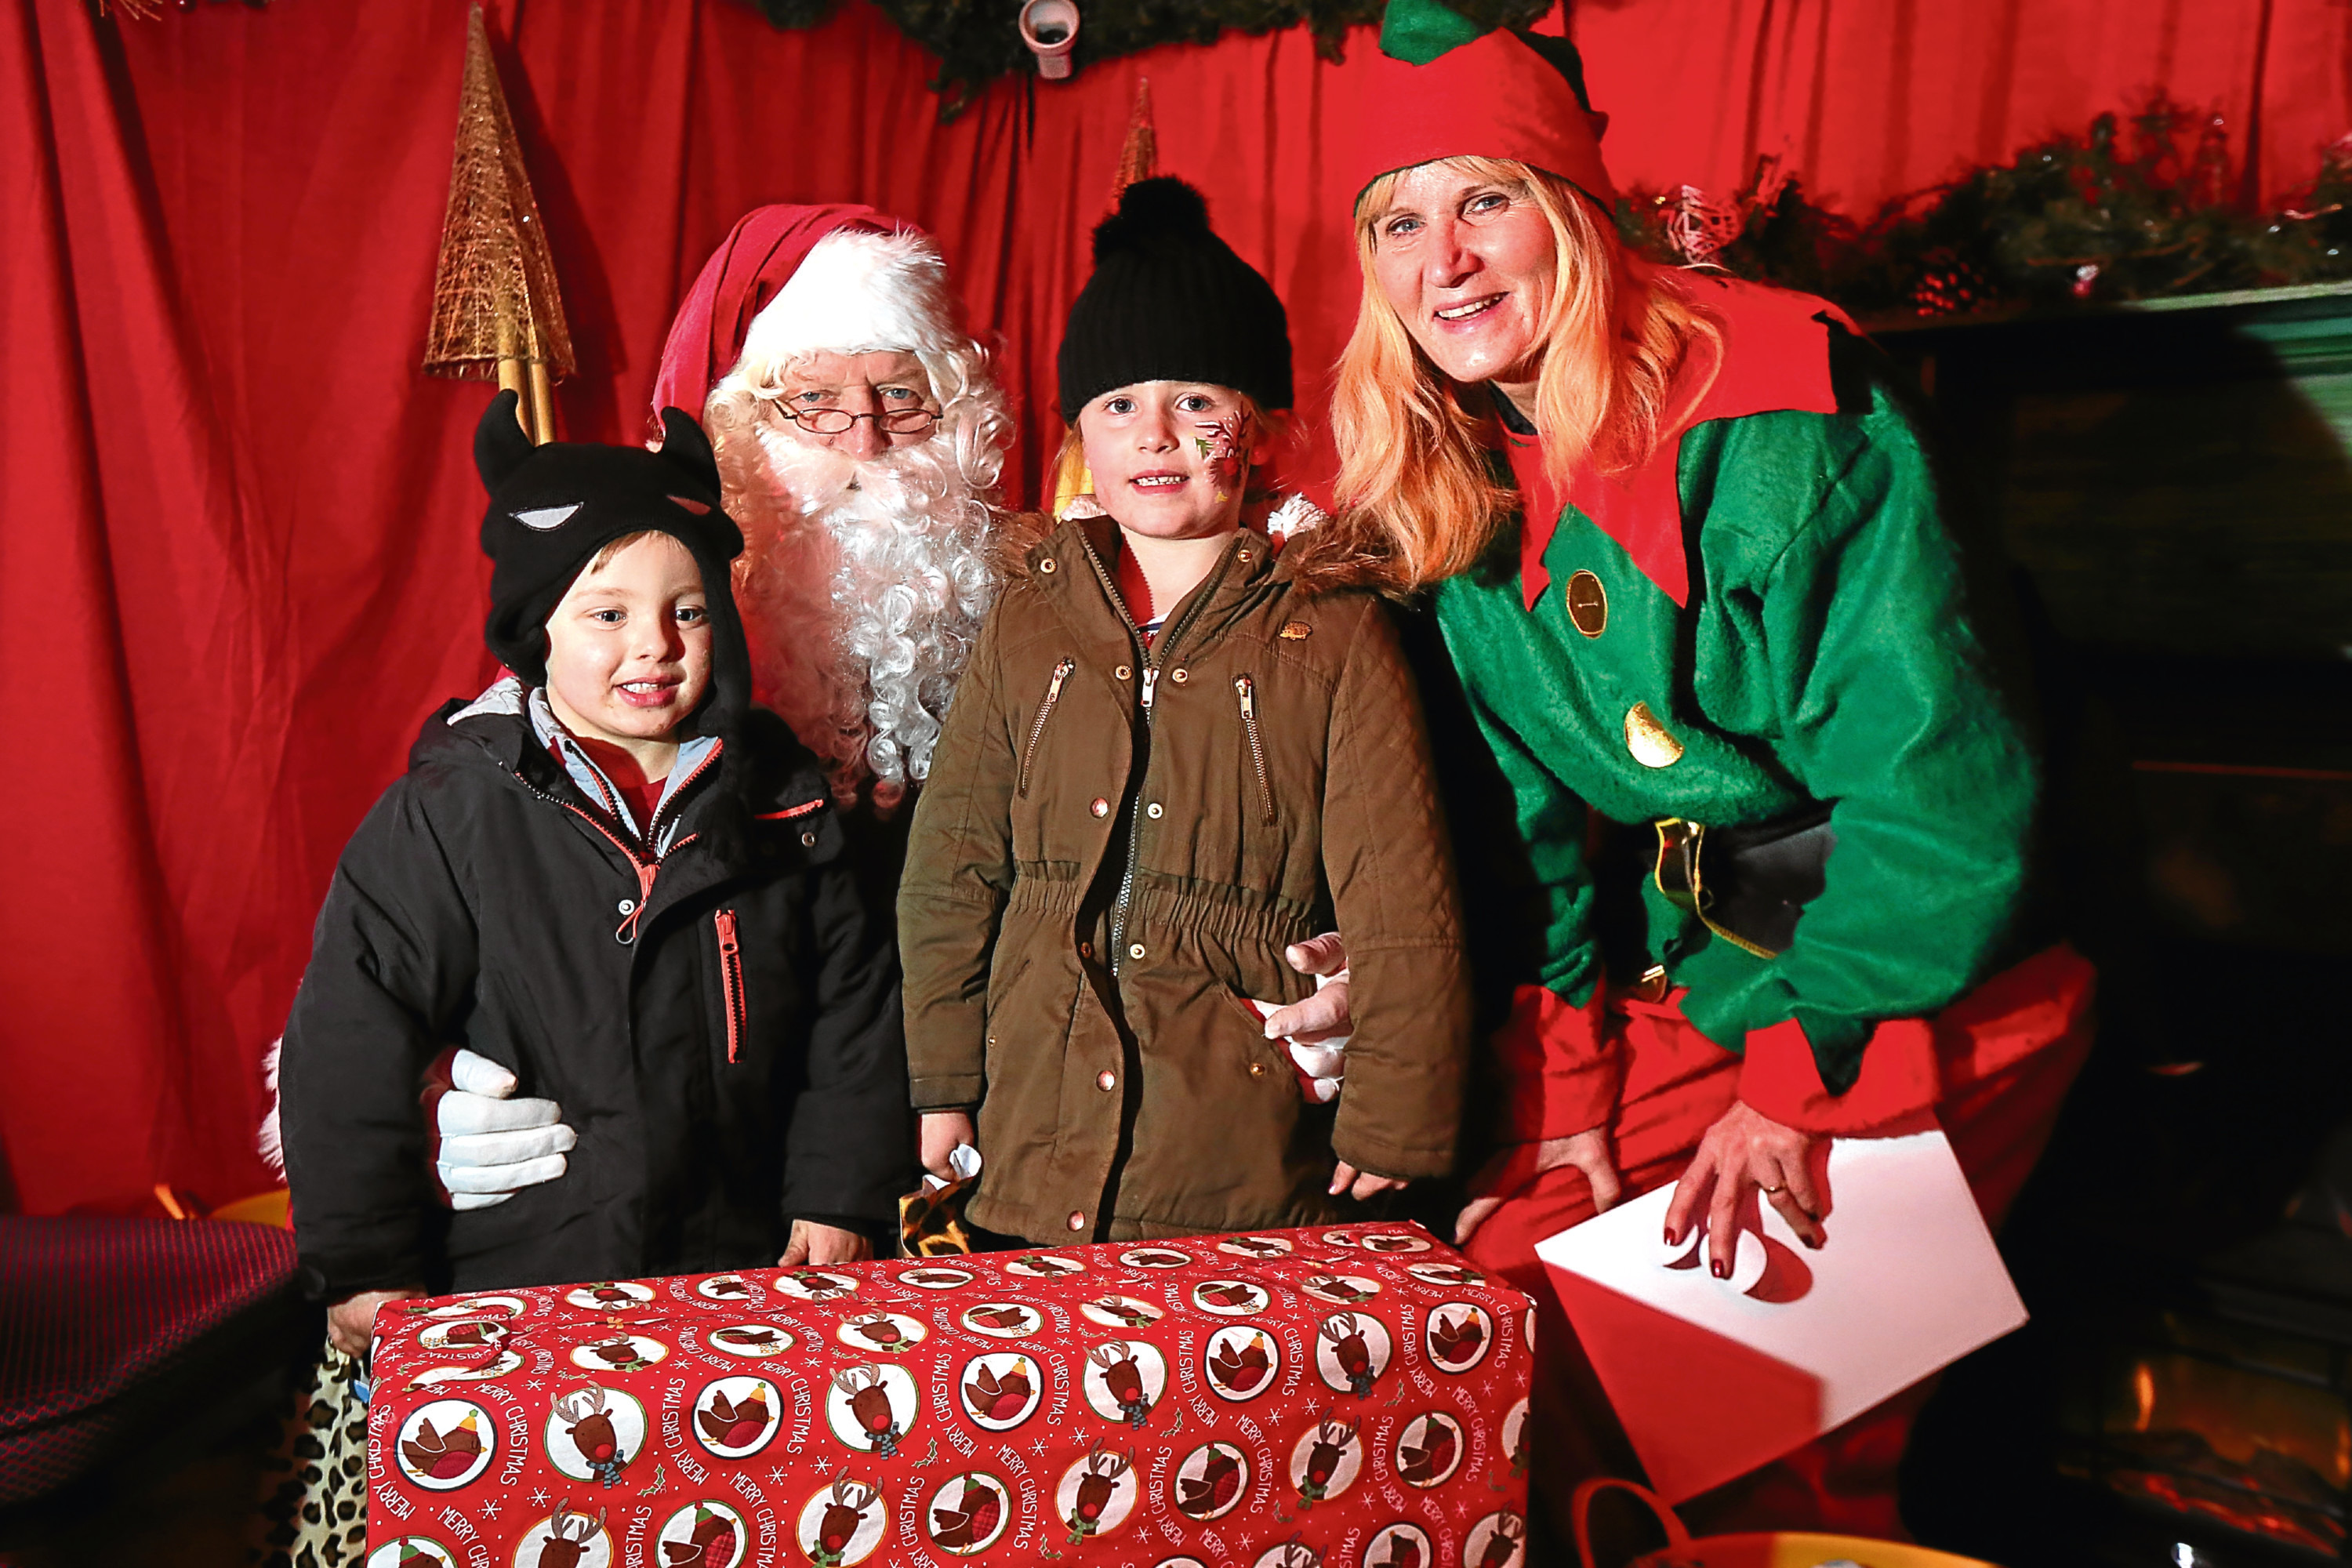 Noah and Alba Cooper with Santa and his elf.